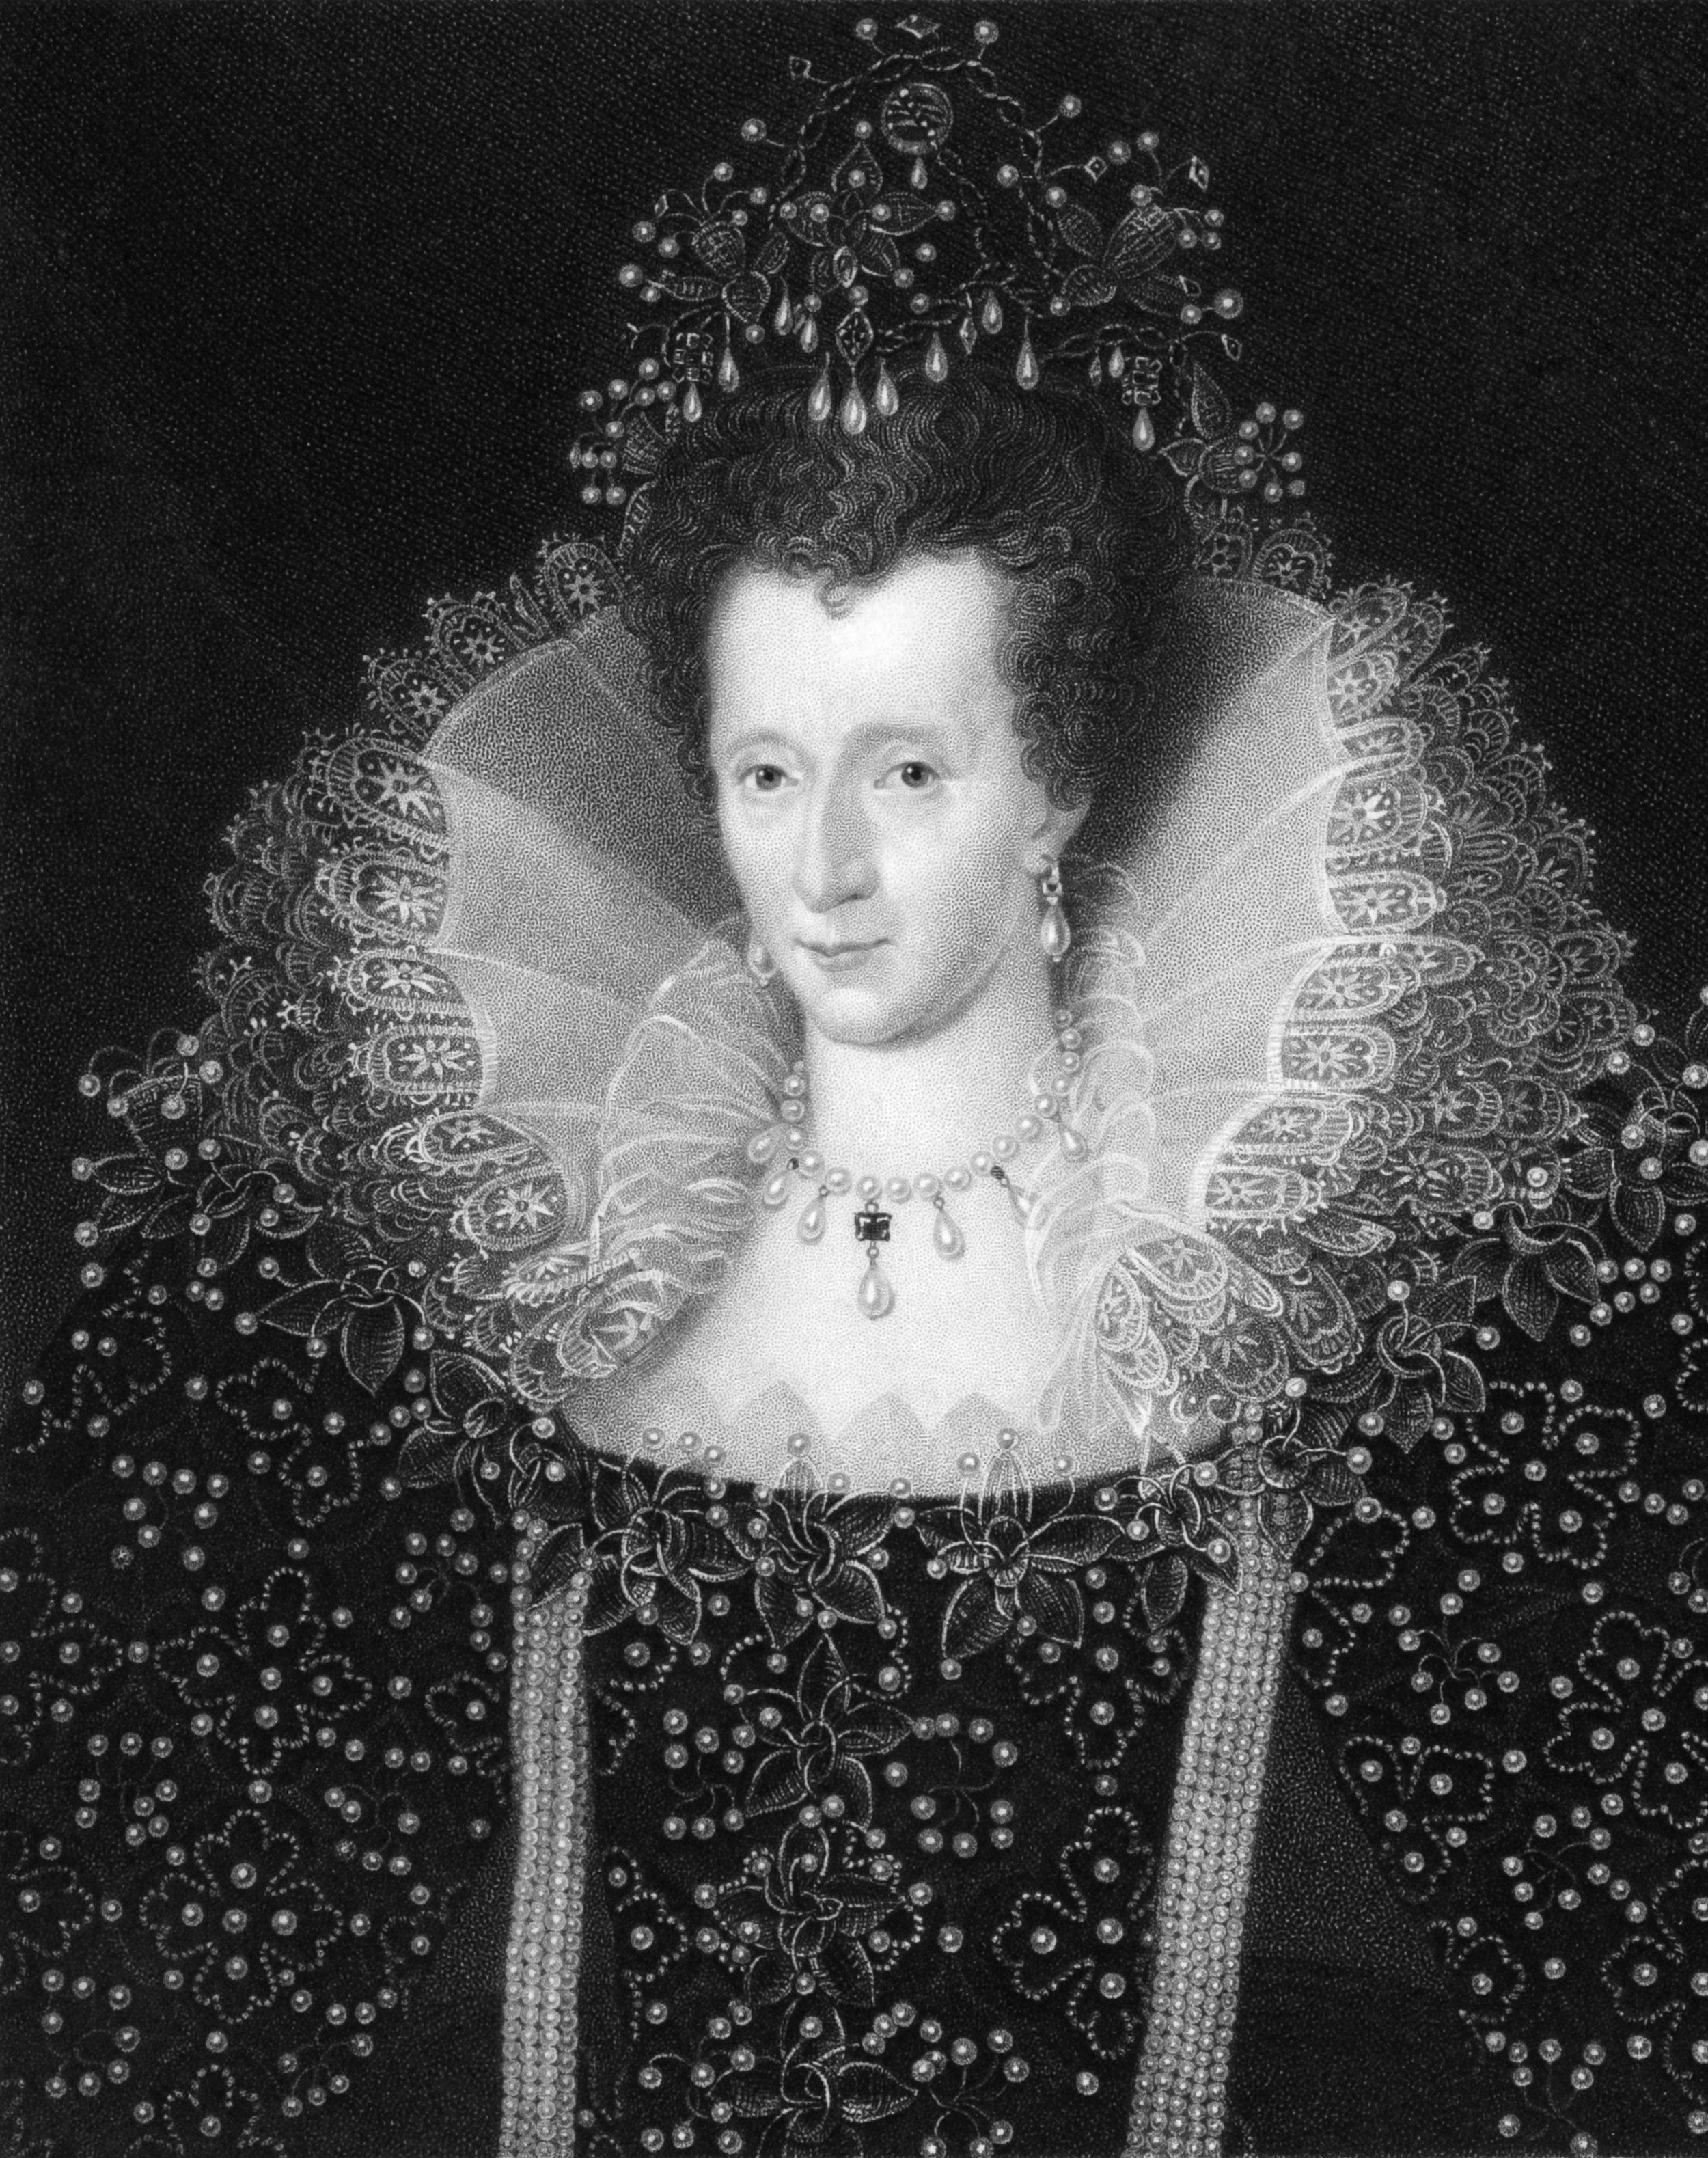 Queen Elizabeth I was a Protestant, but she didn't approve of the Puritans and Separatists.